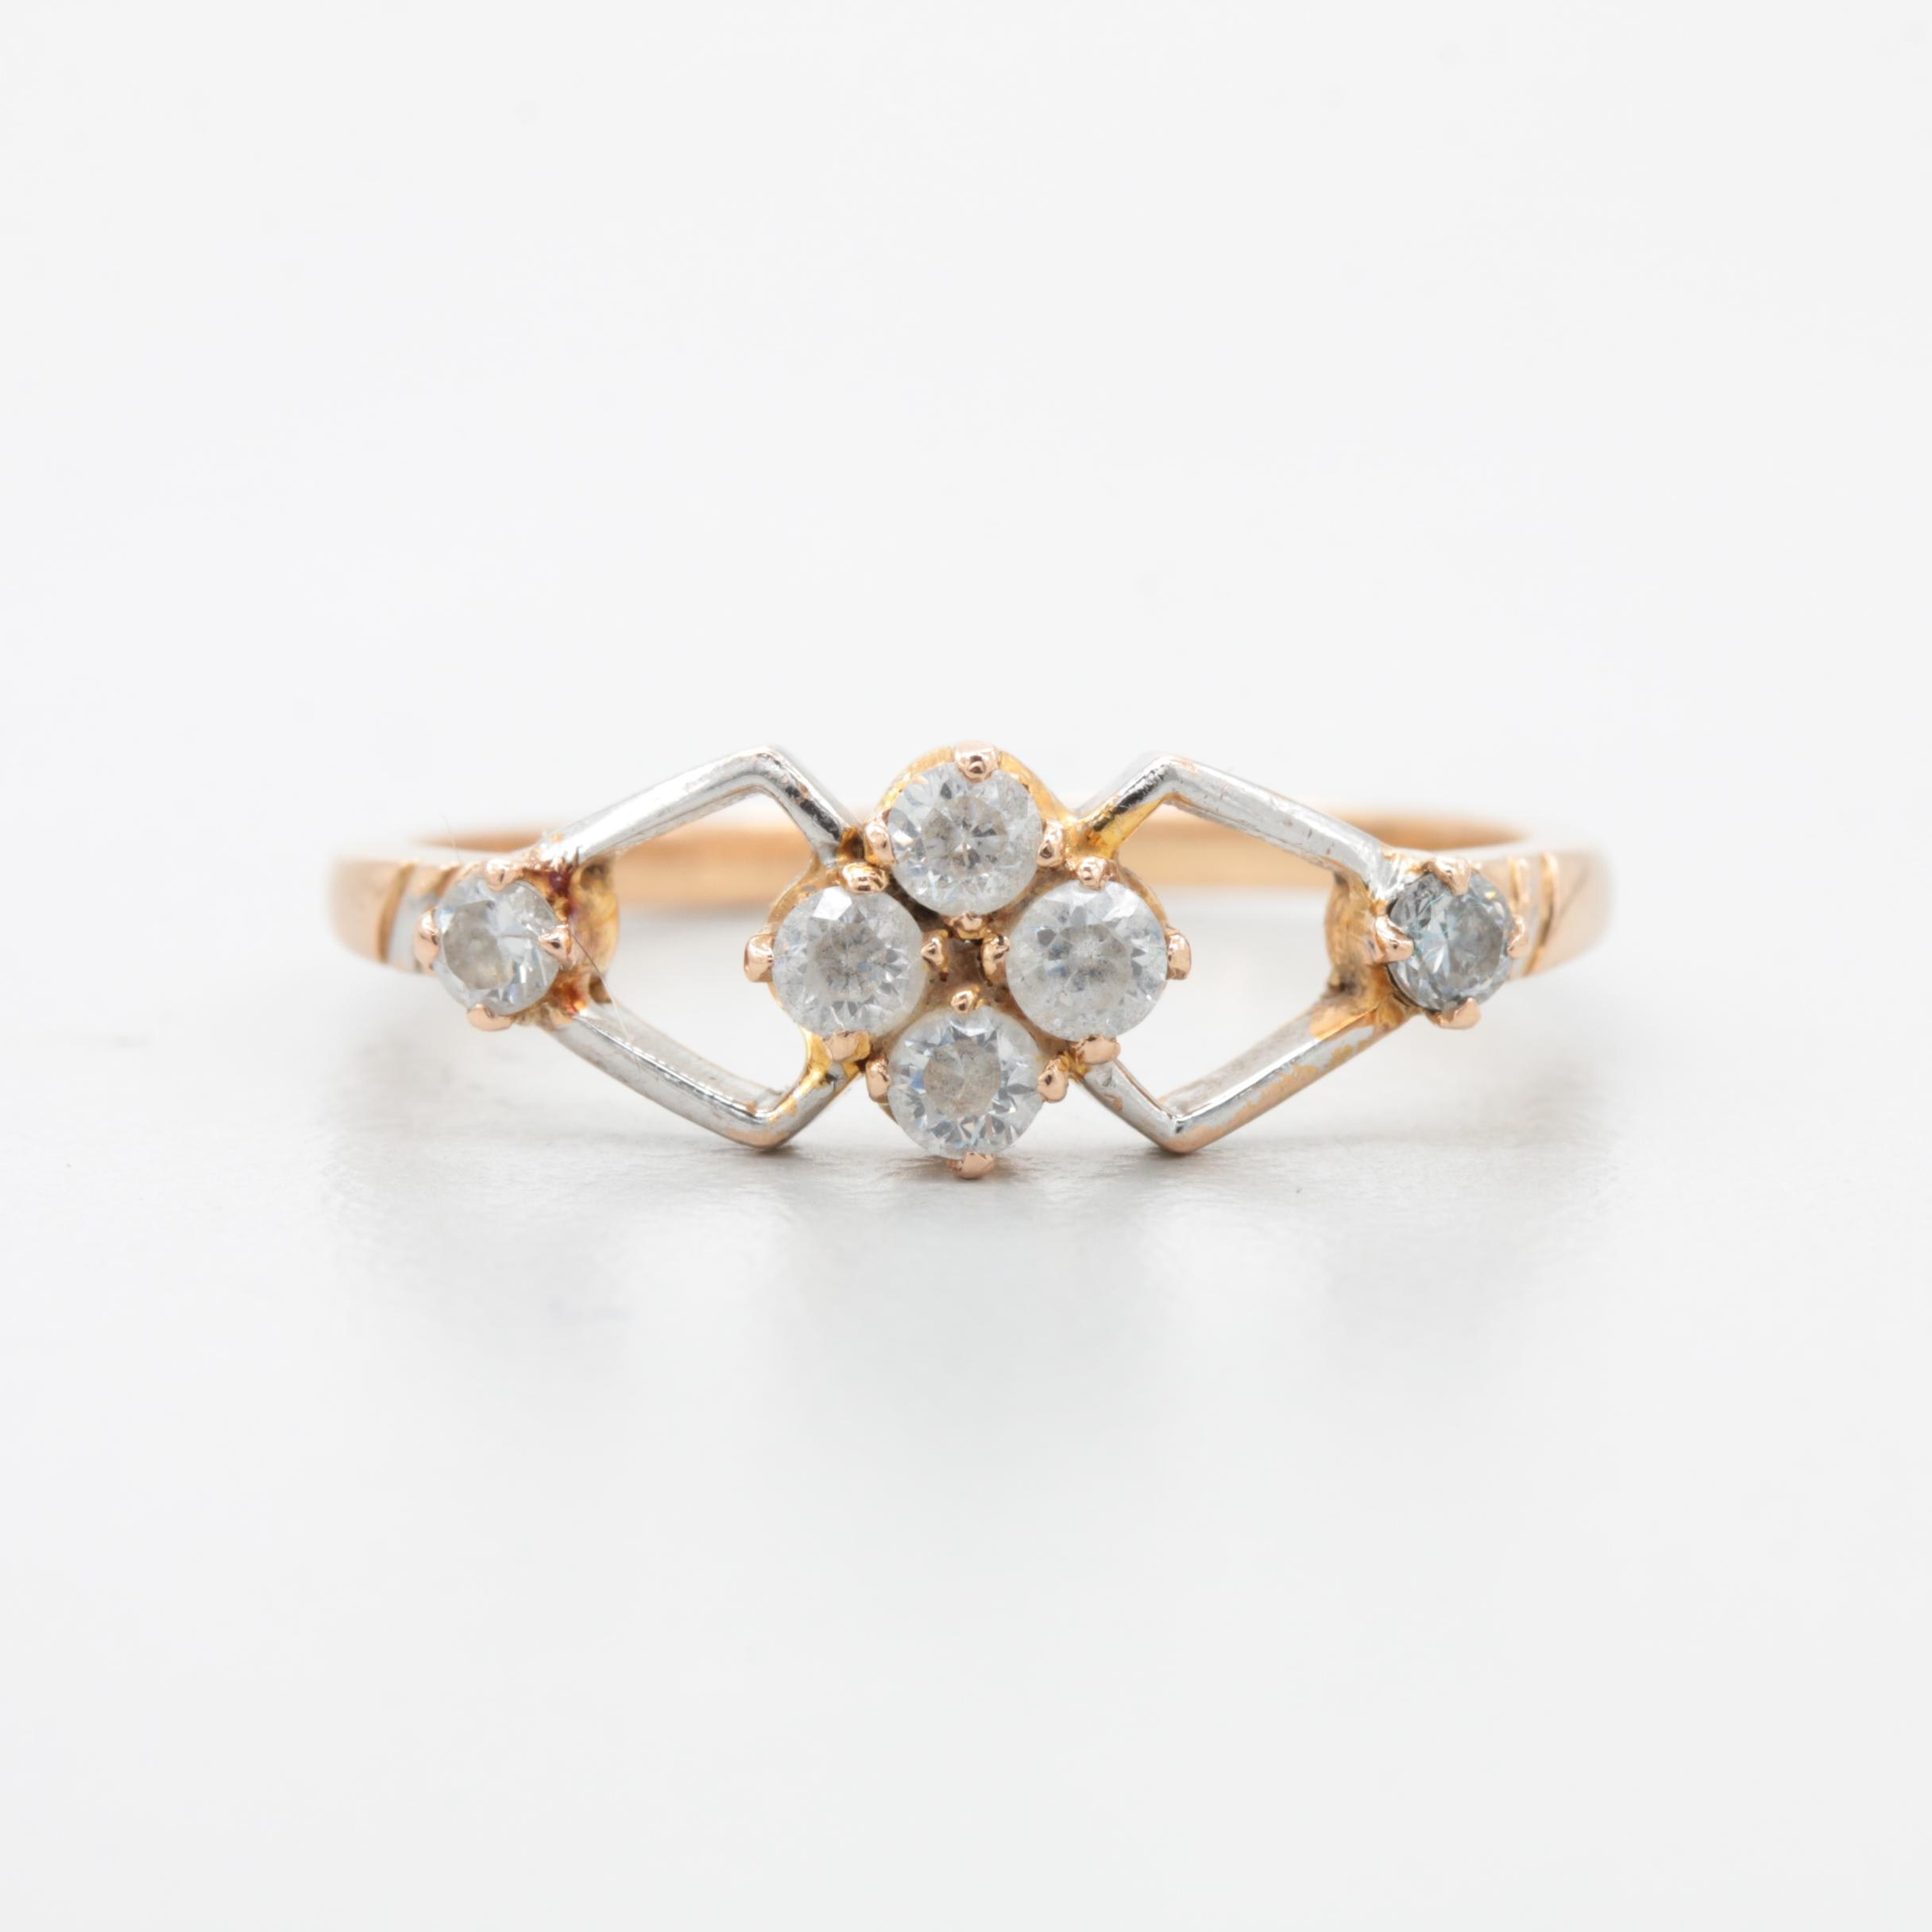 14K and 18K Yellow Gold Cubic Zirconia Ring with White Gold Accents